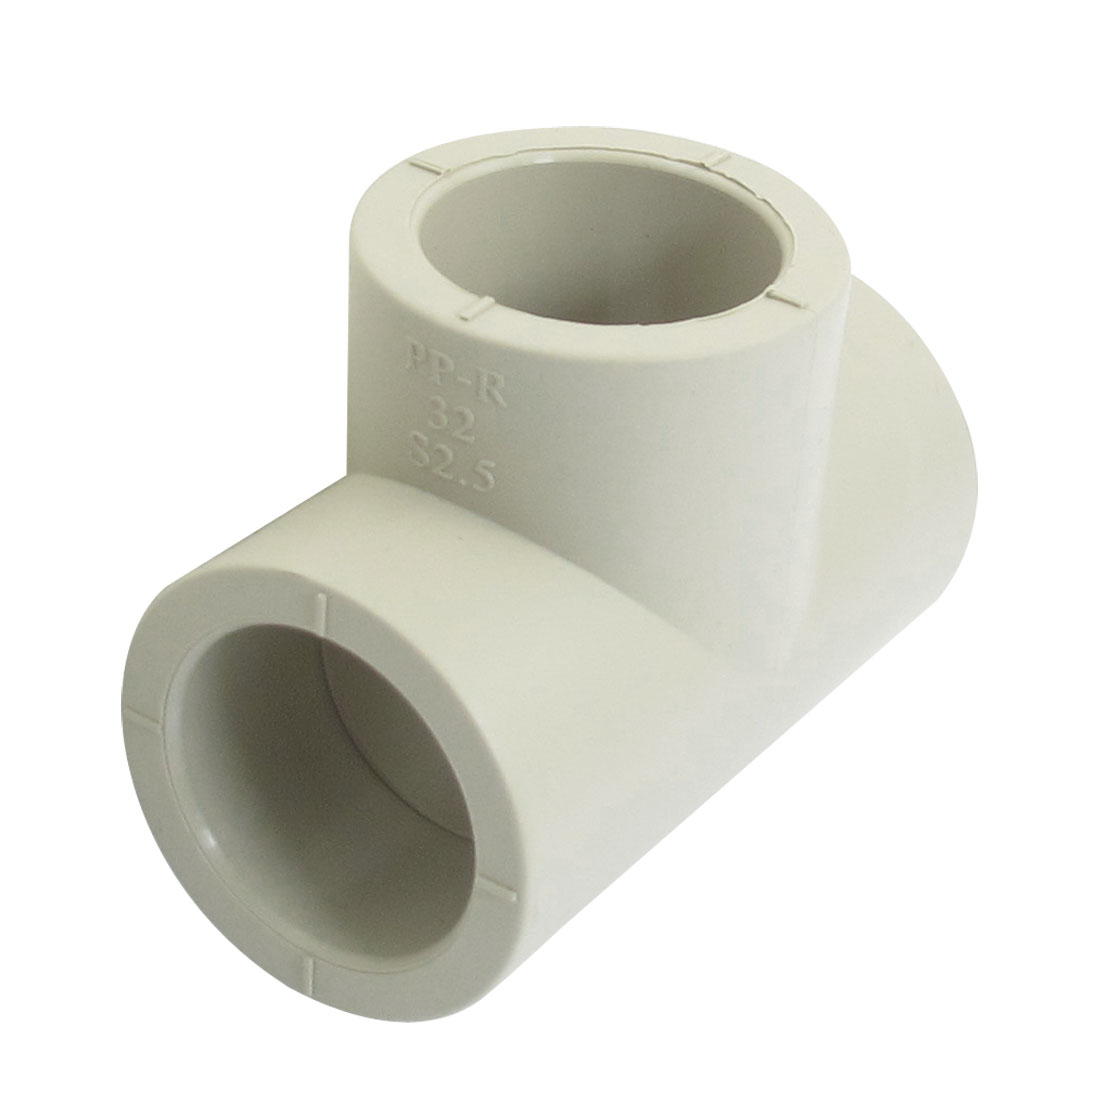 32mm Inner Dia 3 Ways Tee Shaped PPR Pipe Connector Fitting